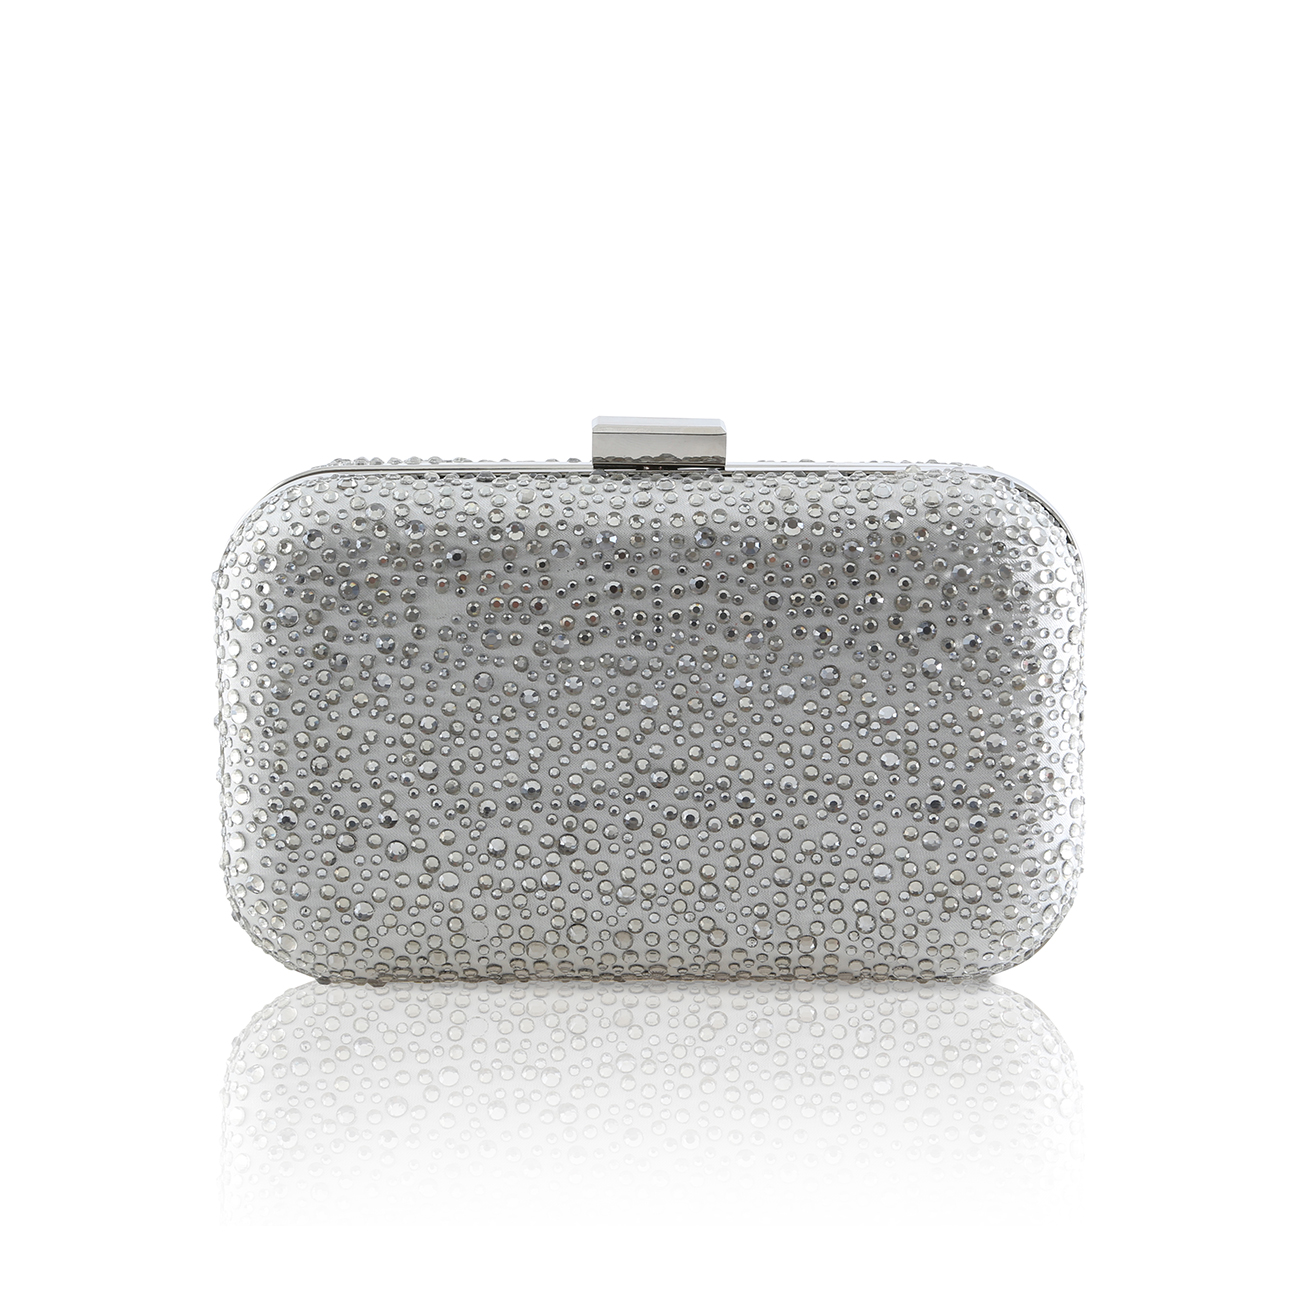 Sammy crystal encrusted ivory clutch bag